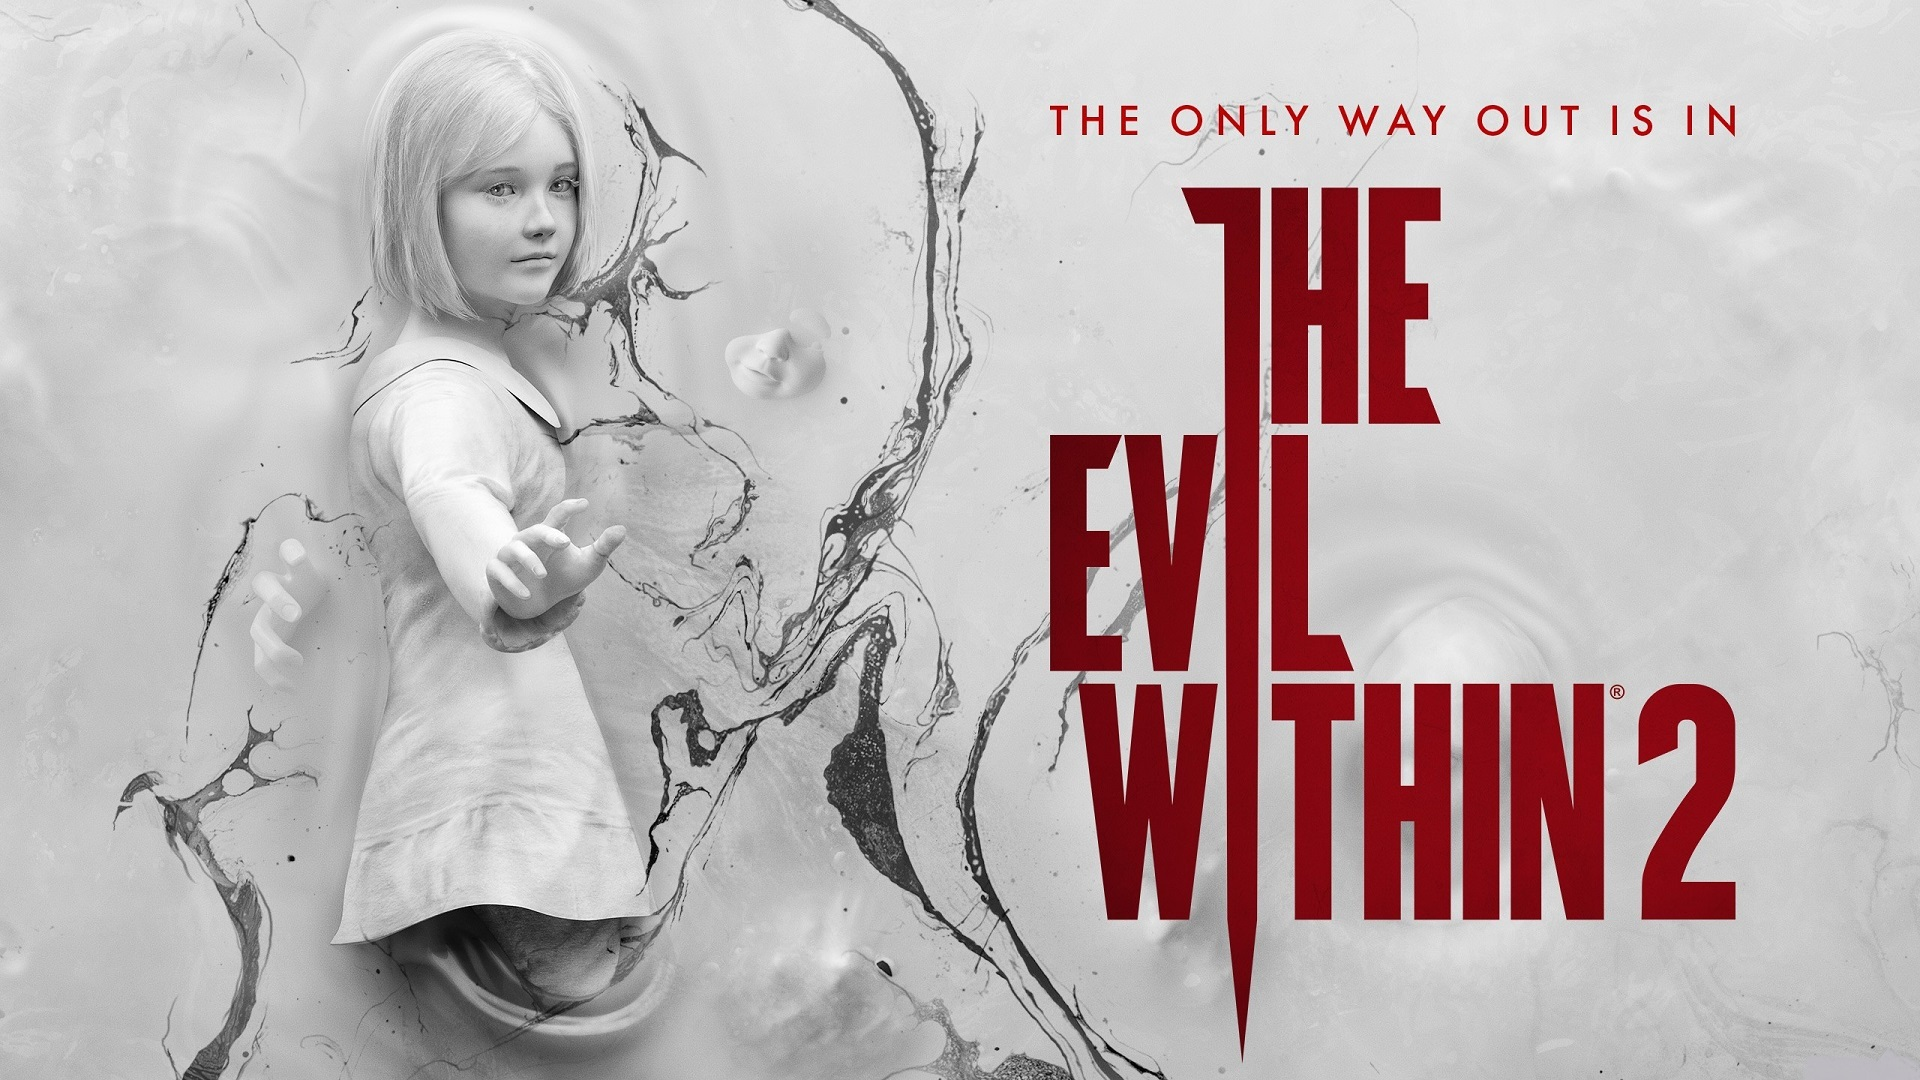 The Evil Within 2 Wallpaper 01 1920x1080: Download Wallpaper 1920x1080 The Evil Within 2, Video Game